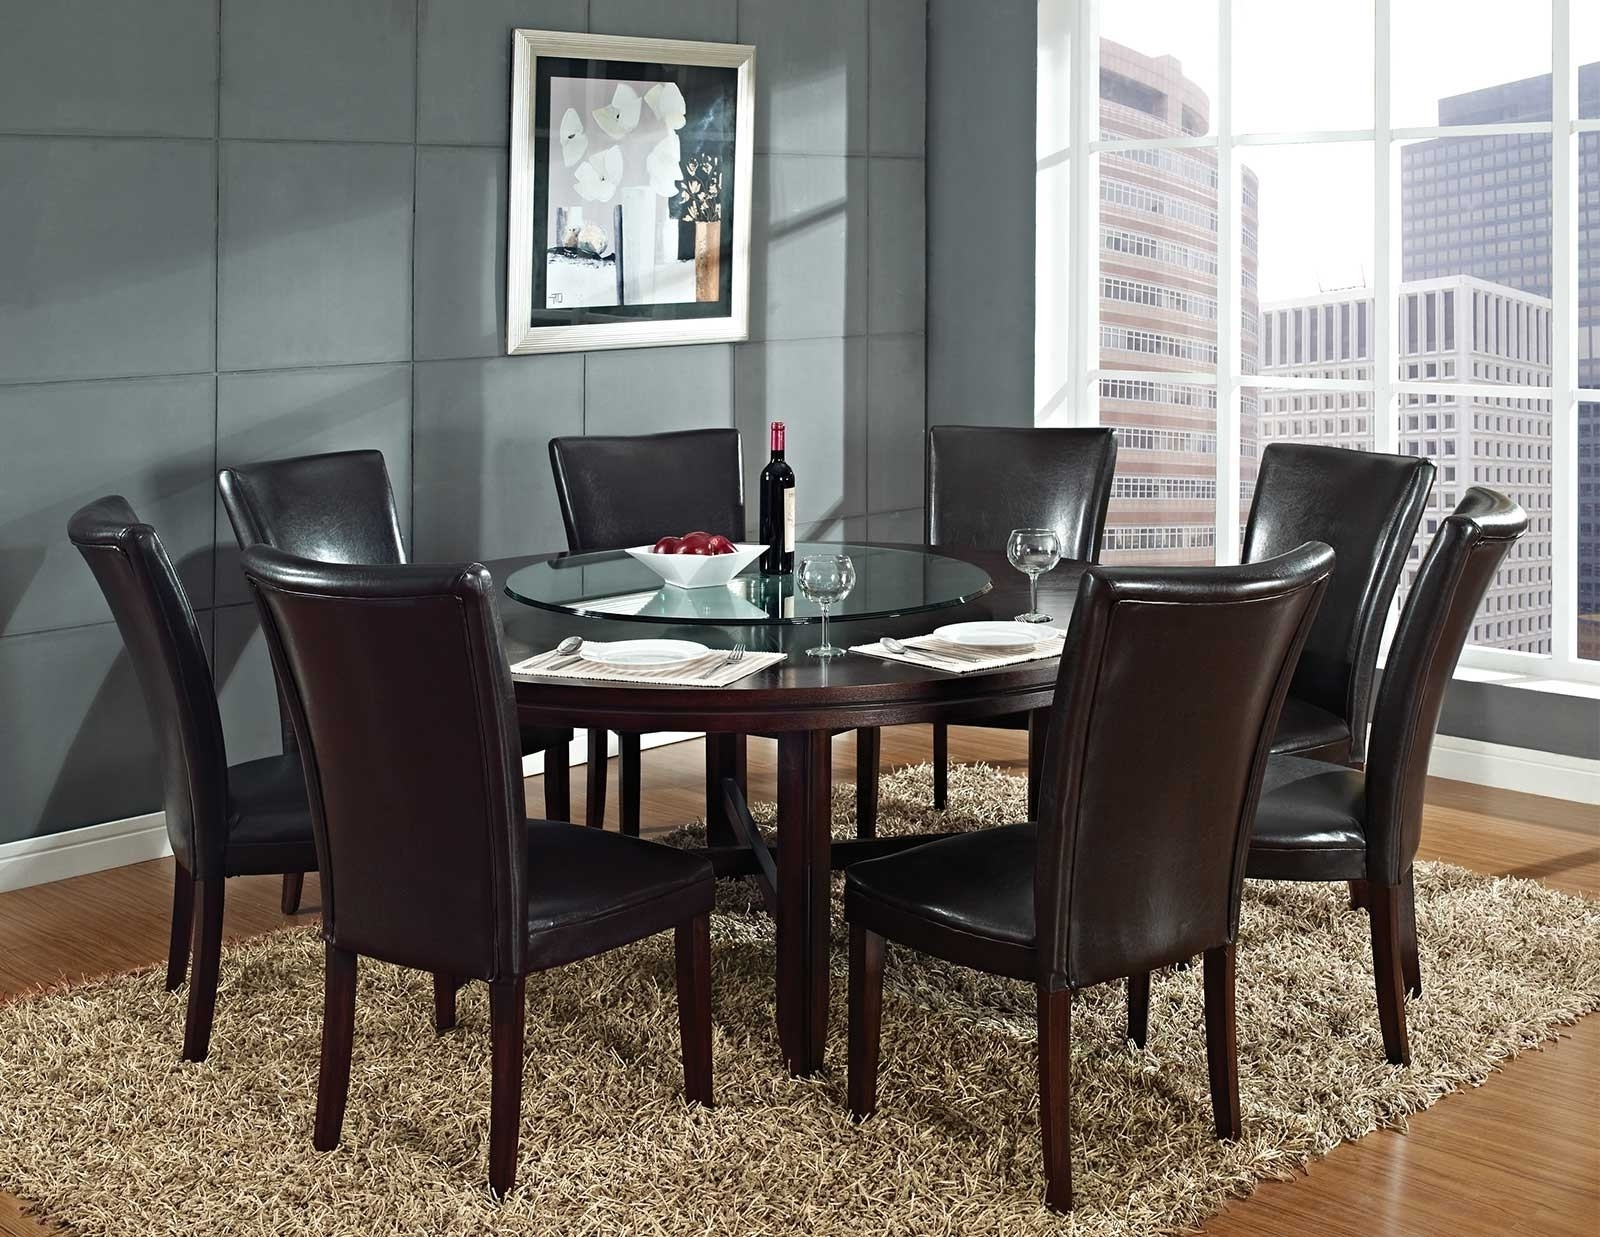 Best And Newest Dining Tables: Glamorous Large Round Dining Table Seats 6 6 Person Inside 6 Seat Round Dining Tables (View 8 of 25)